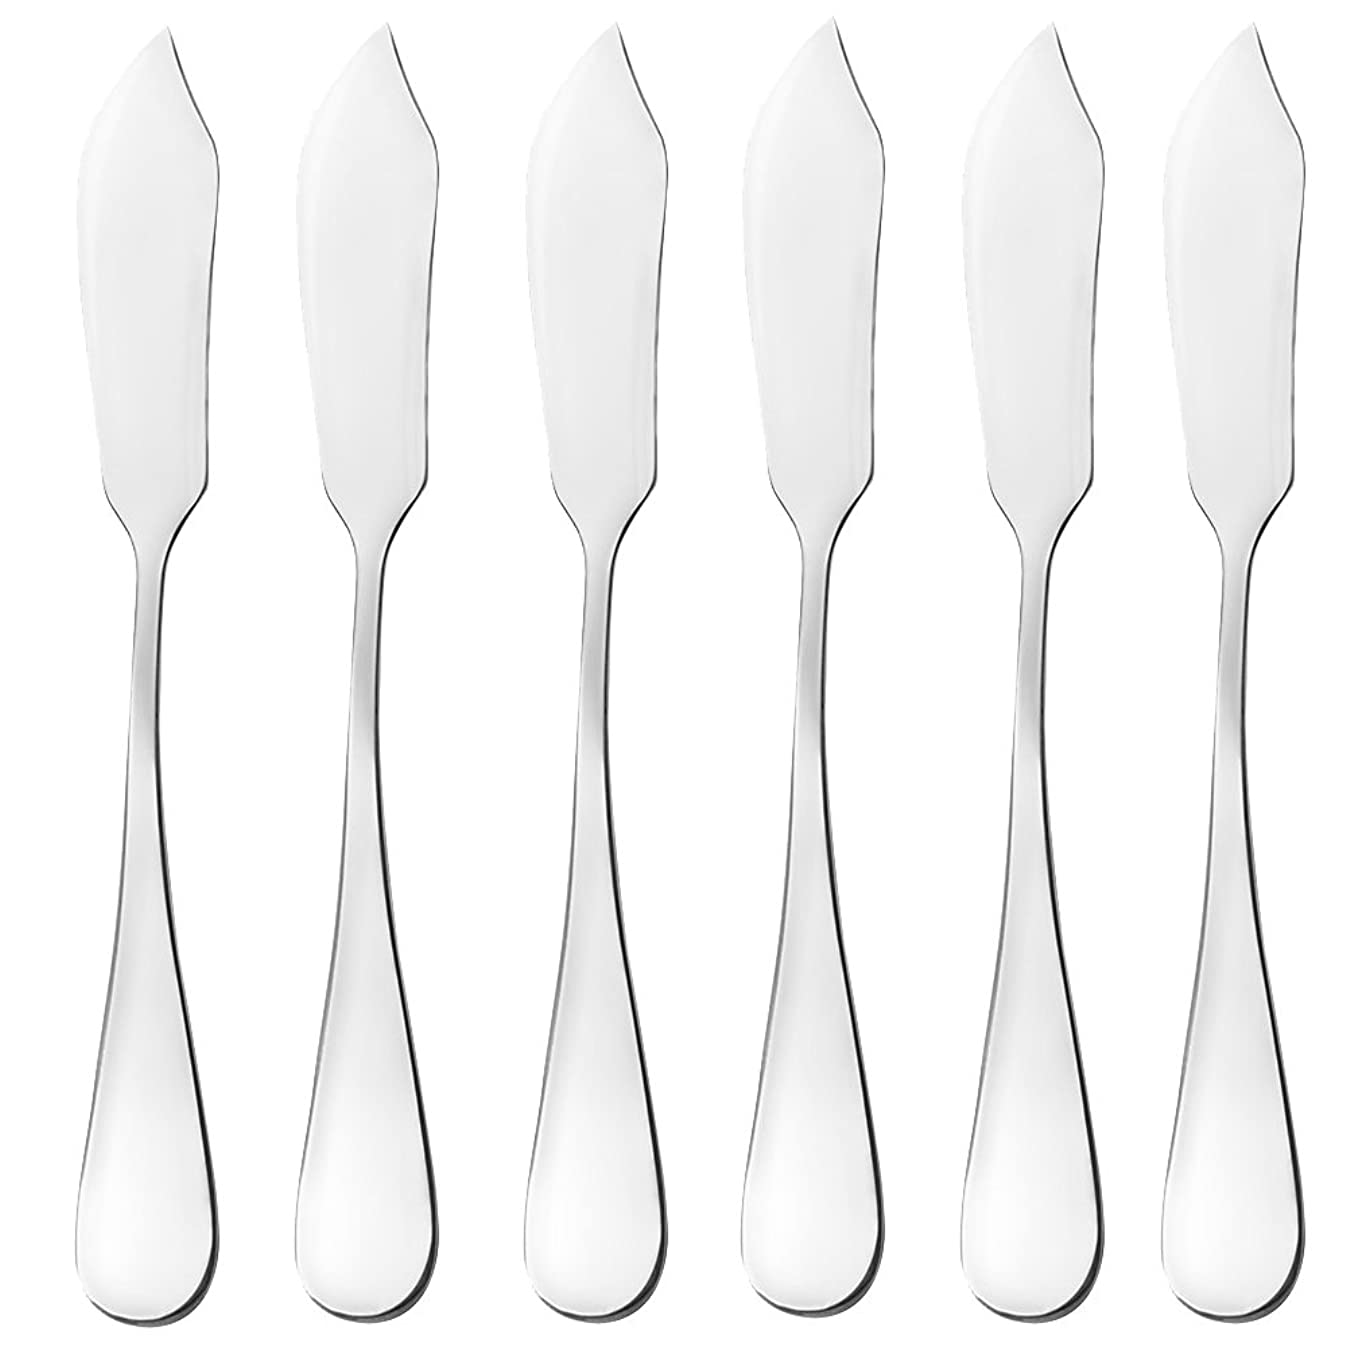 Butter Knife,Cheese Knife, Cheese Spreaders, AOOSY Cute Mini 5.91 inches Stainless Steel Kitchen Knives for Butter Sandwiches Cheese Breakfast,Packs Of 6 (Butter Knife in The Box)